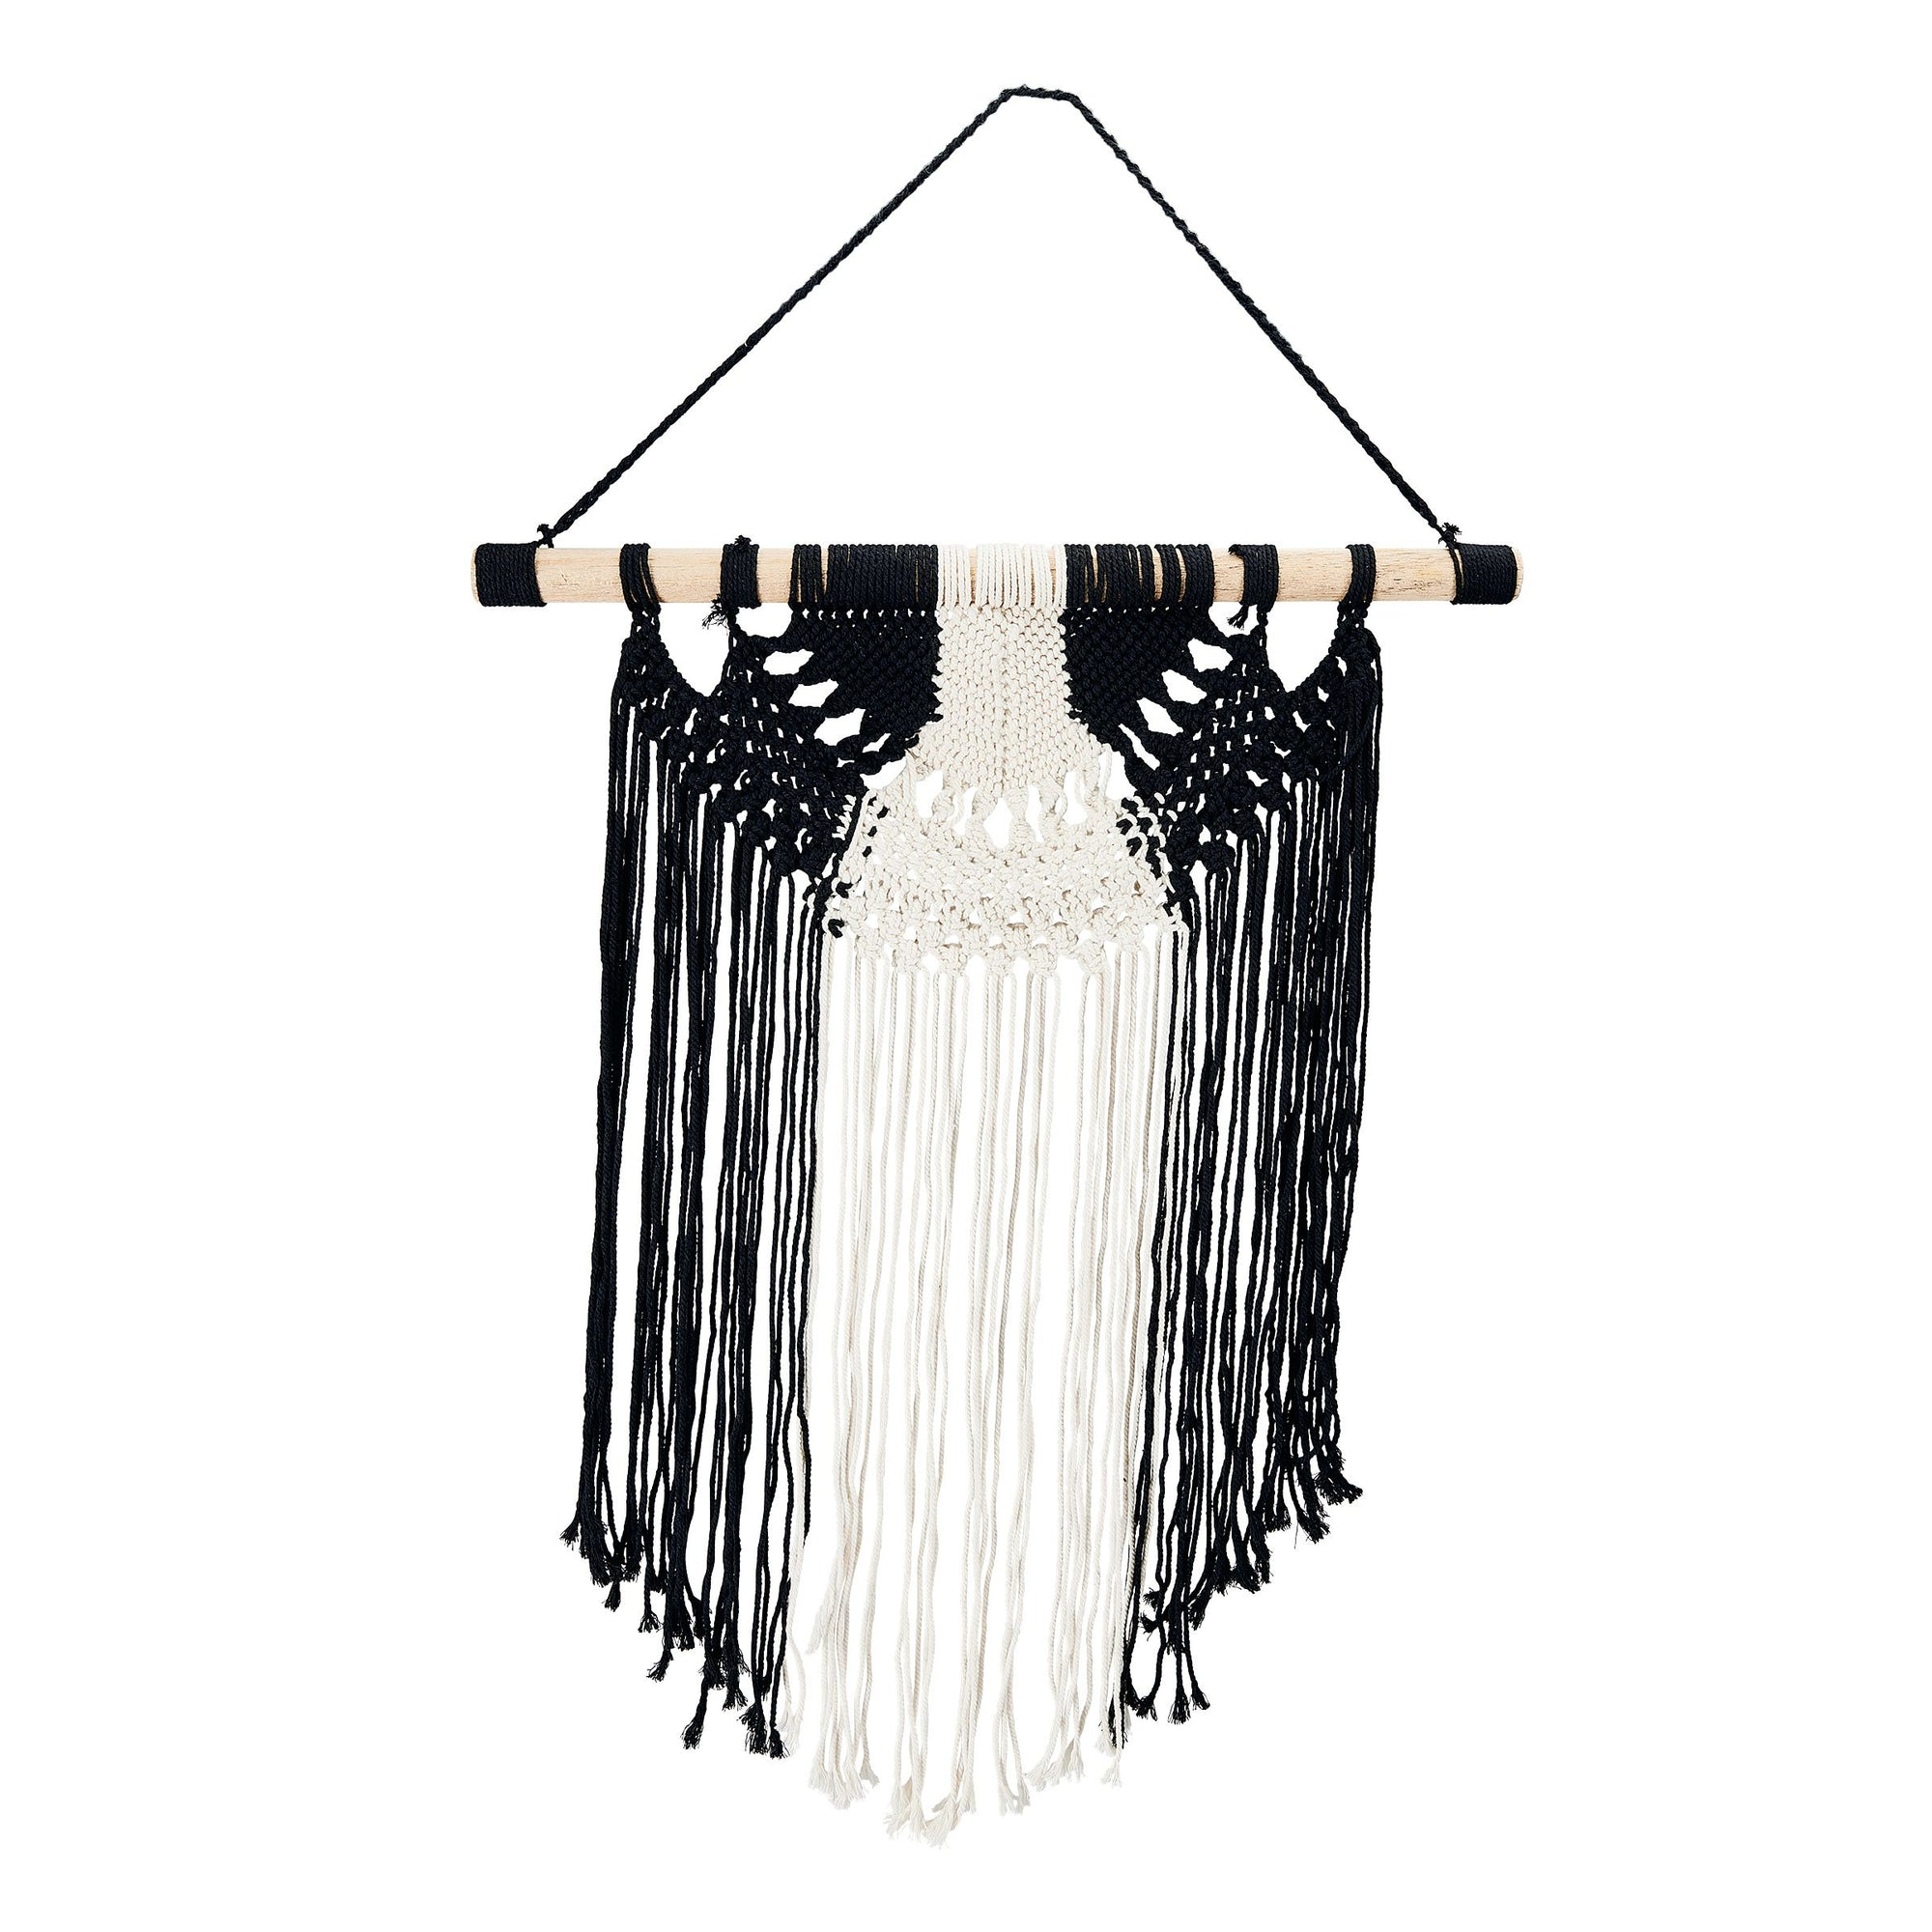 Macramé Wall Hanging with fringe - (BSH3023)